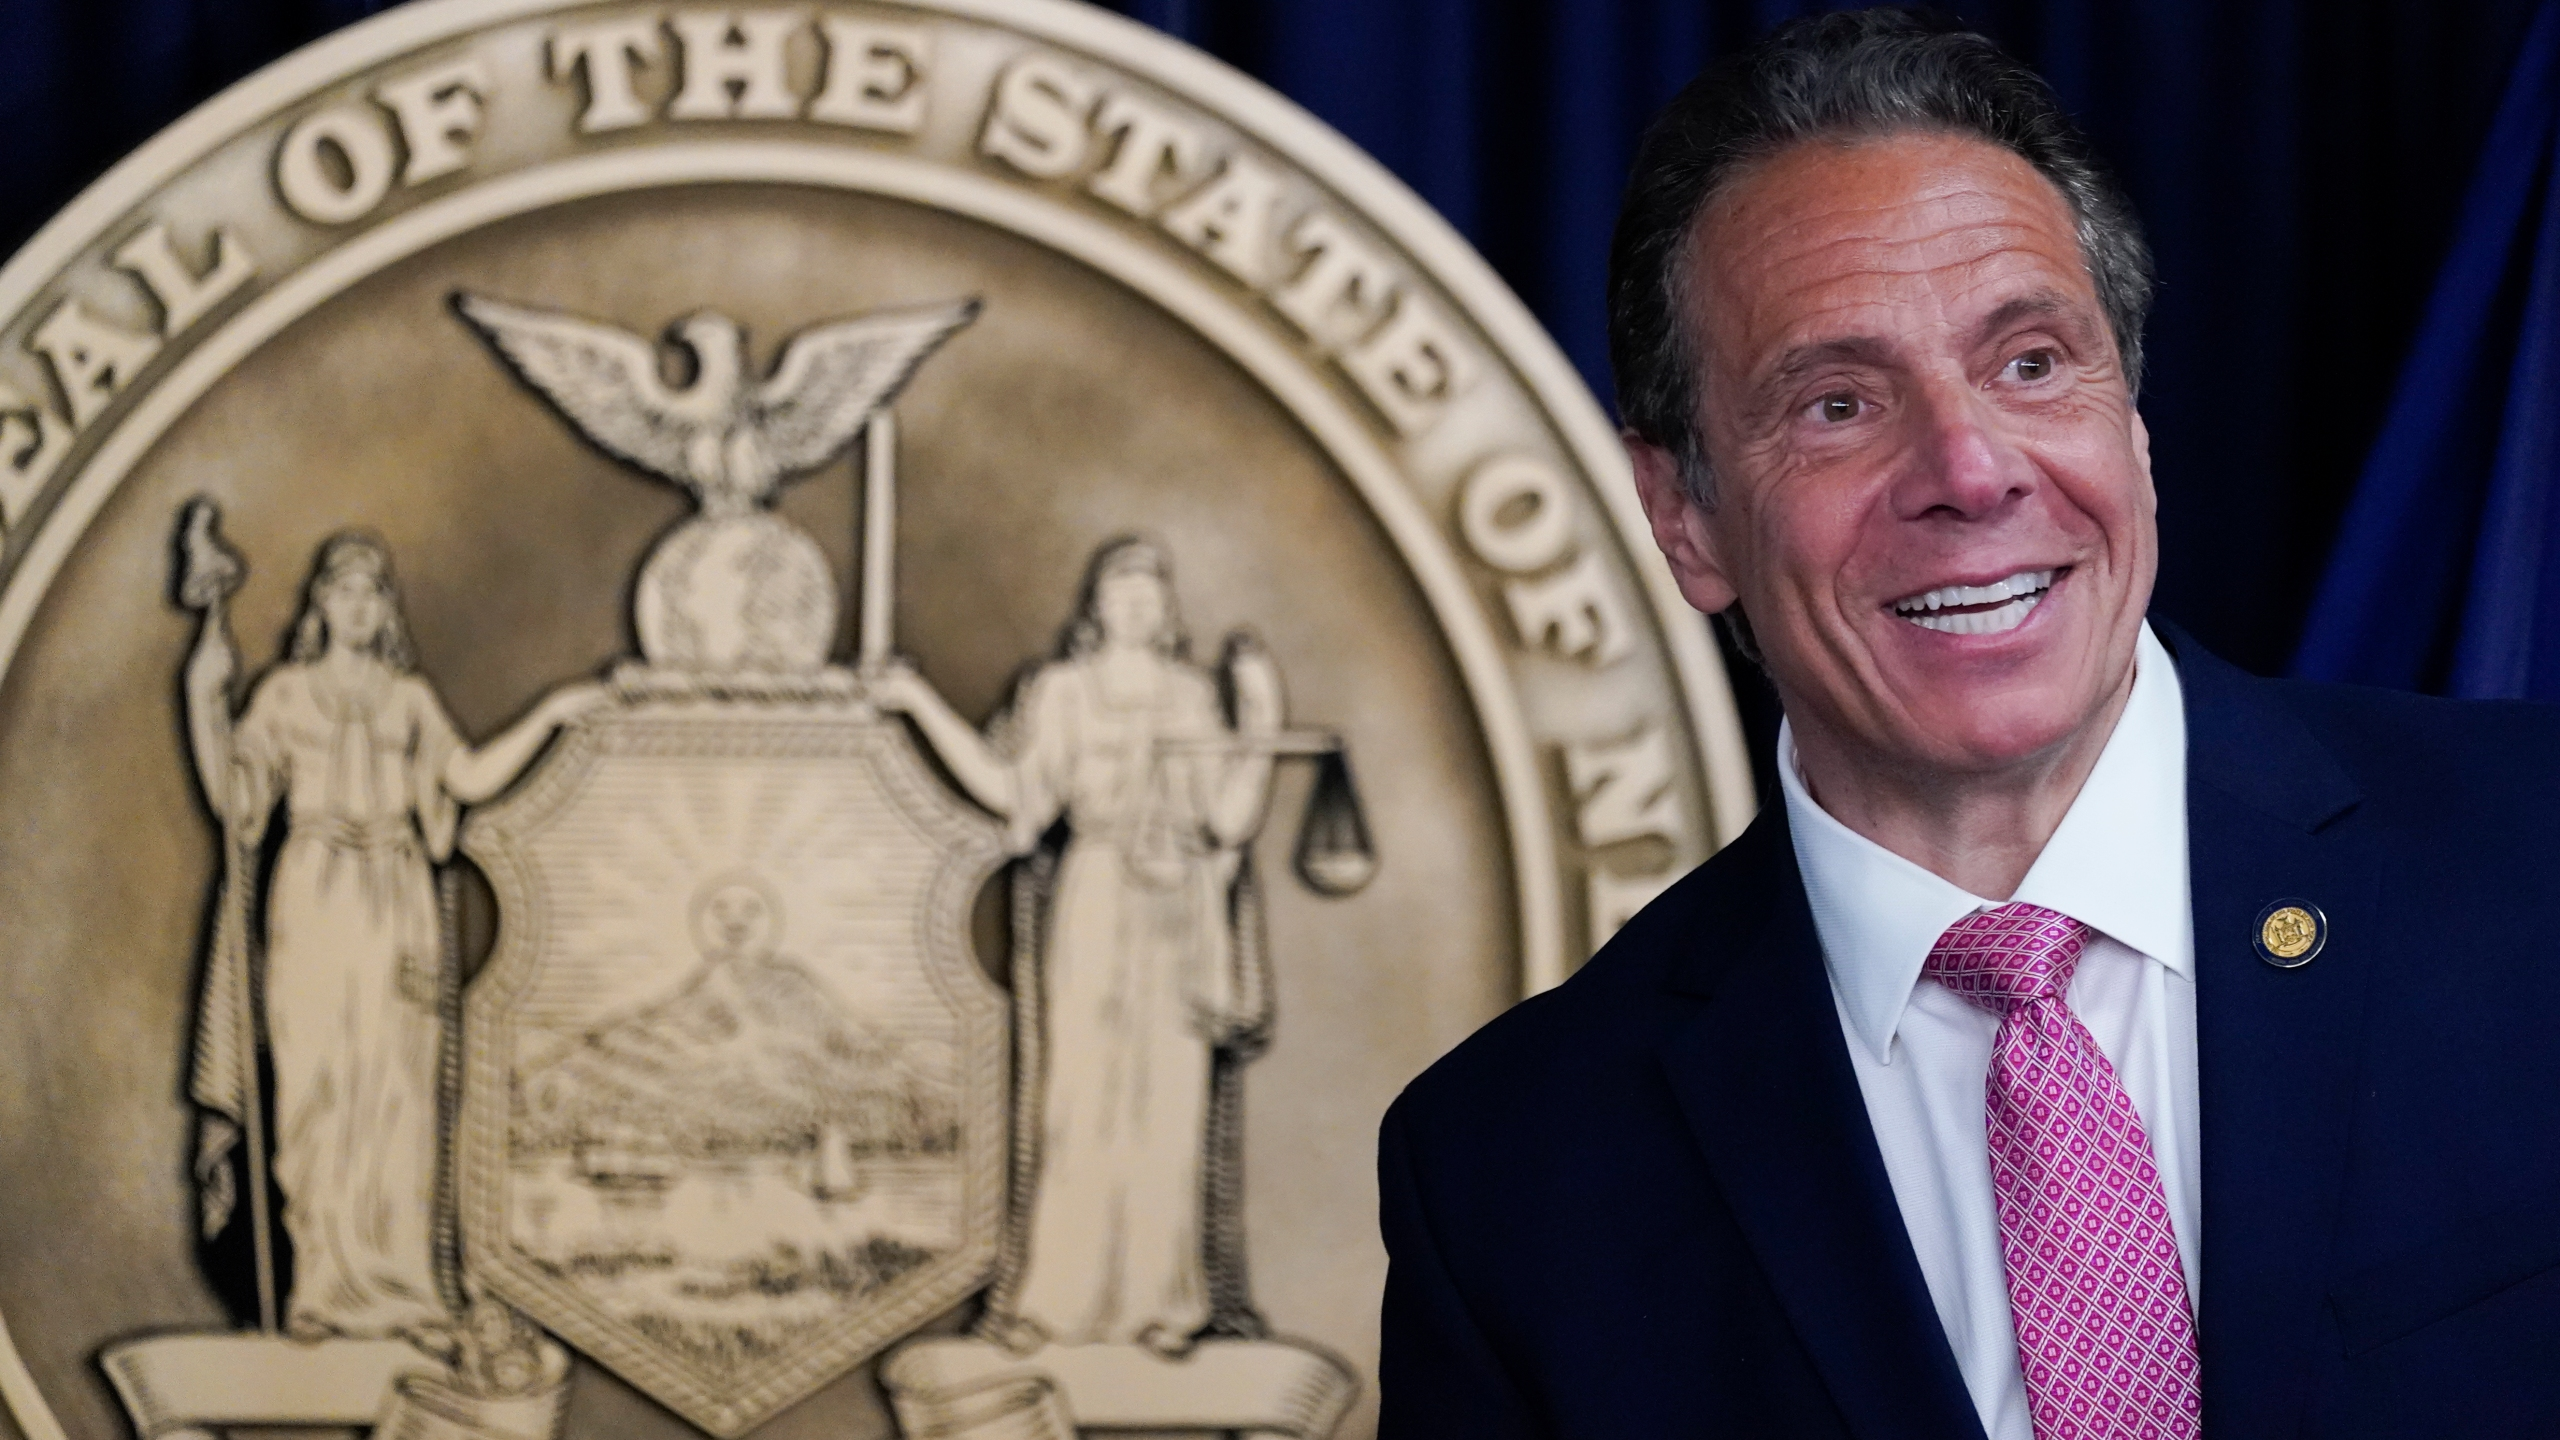 New York Gov. Andrew Cuomo speaks during a news conference, Monday, May 10, 2021 in New York. (AP Photo/Mary Altaffer, Pool)